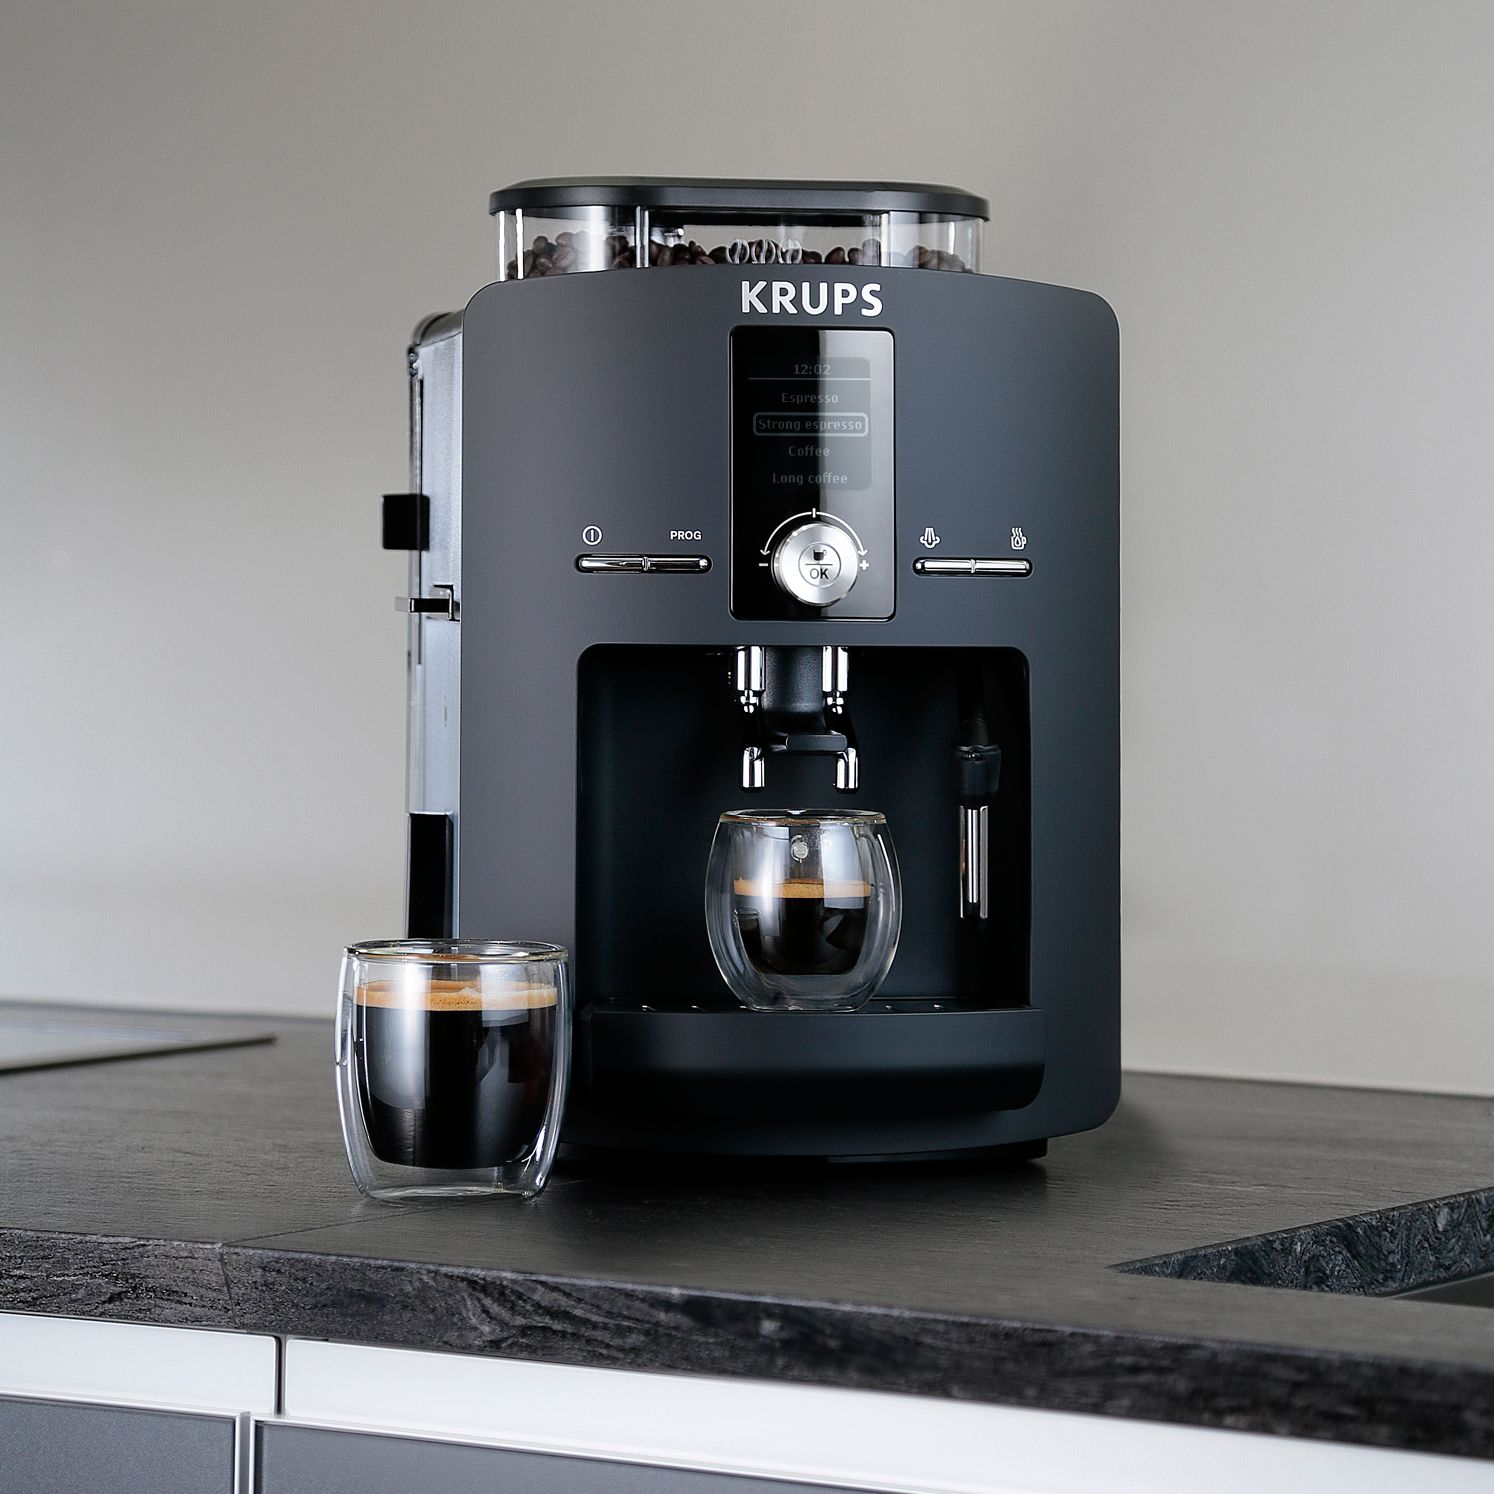 Italian Coffee Maker John Lewis : Buy KRUPS EA825840 Espresseria Bean-to-Cup Coffee Machine, Black John Lewis